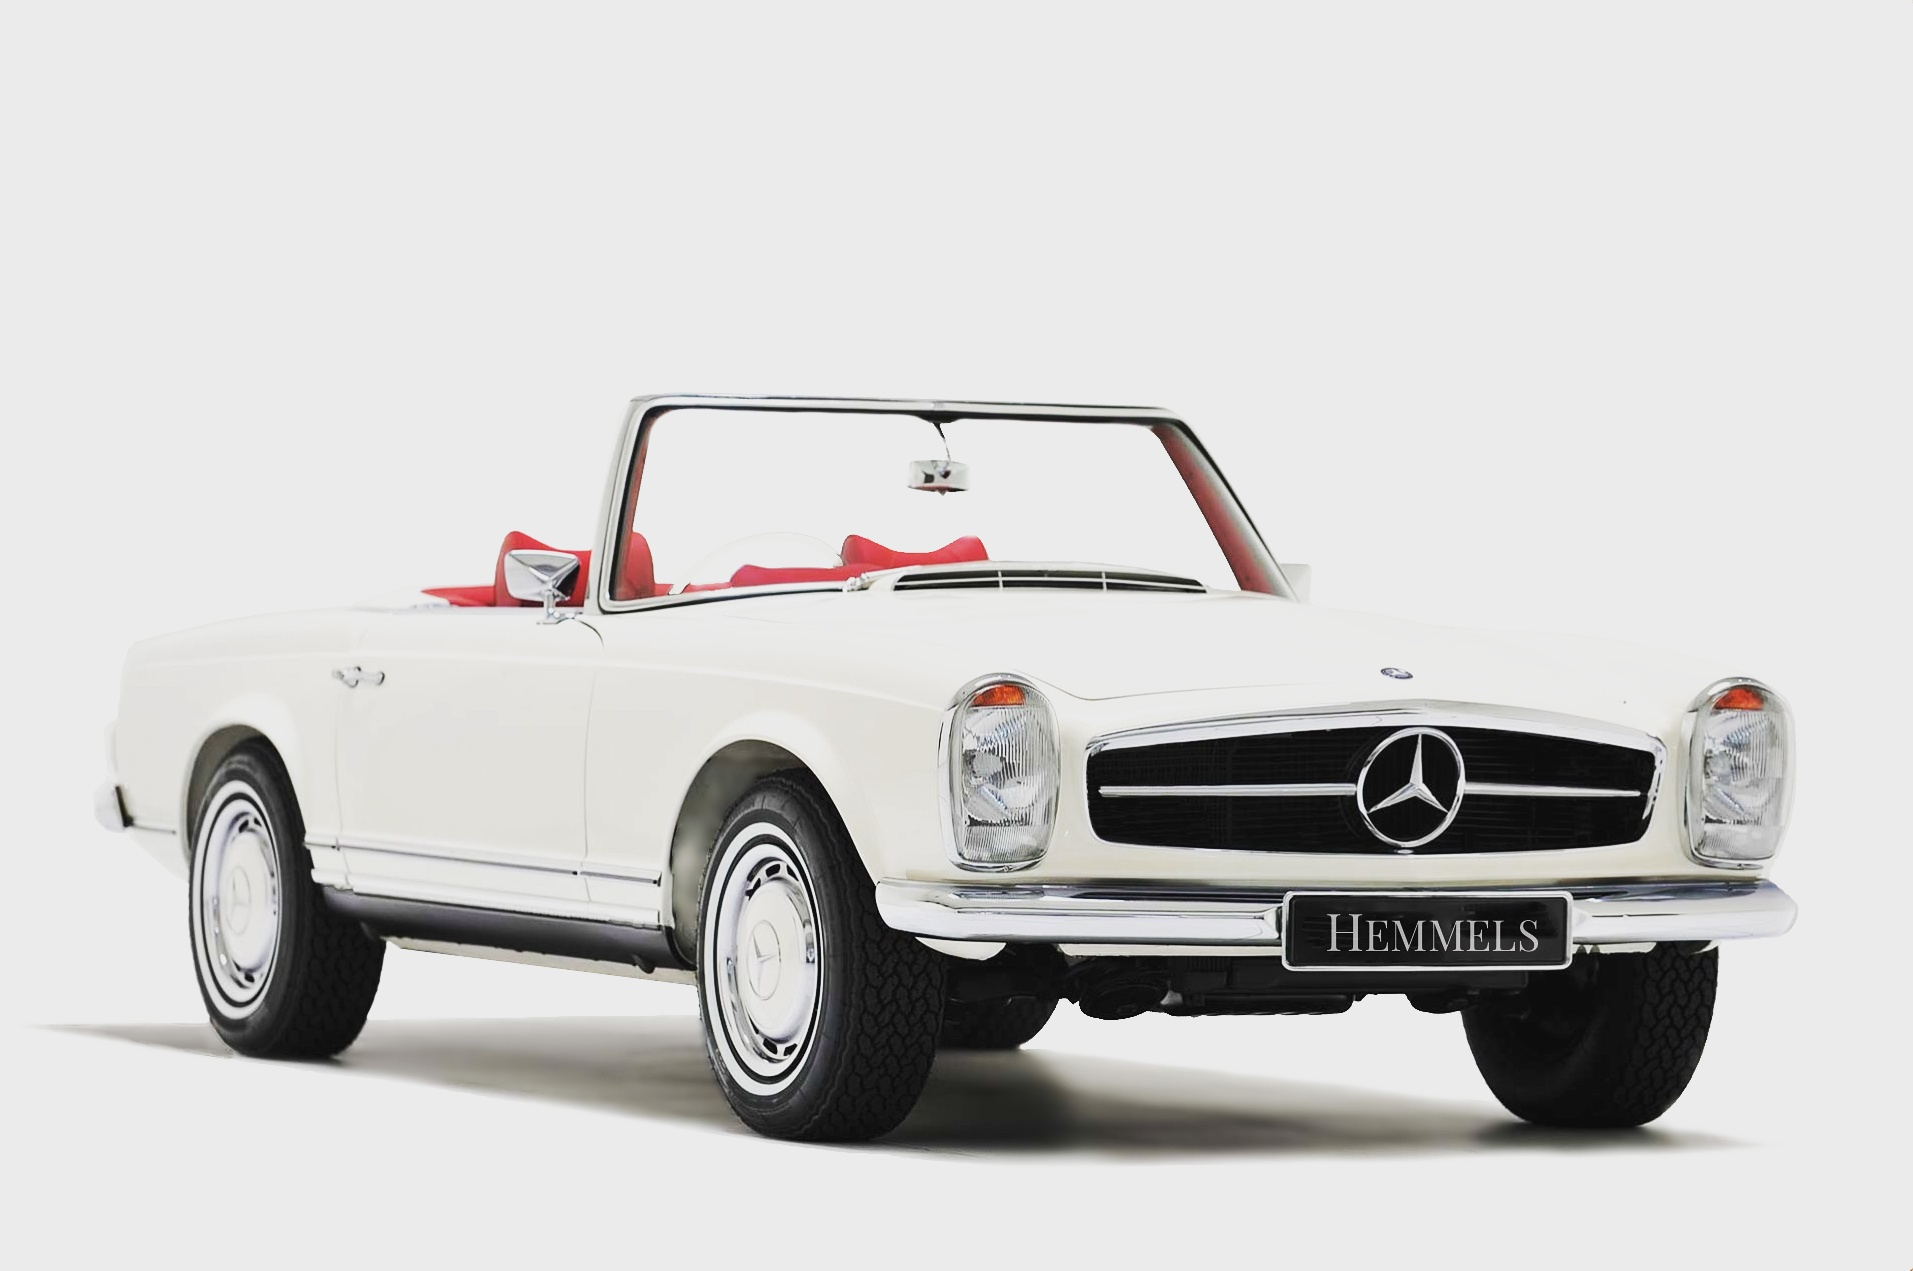 classic white 280SL from Hemmels